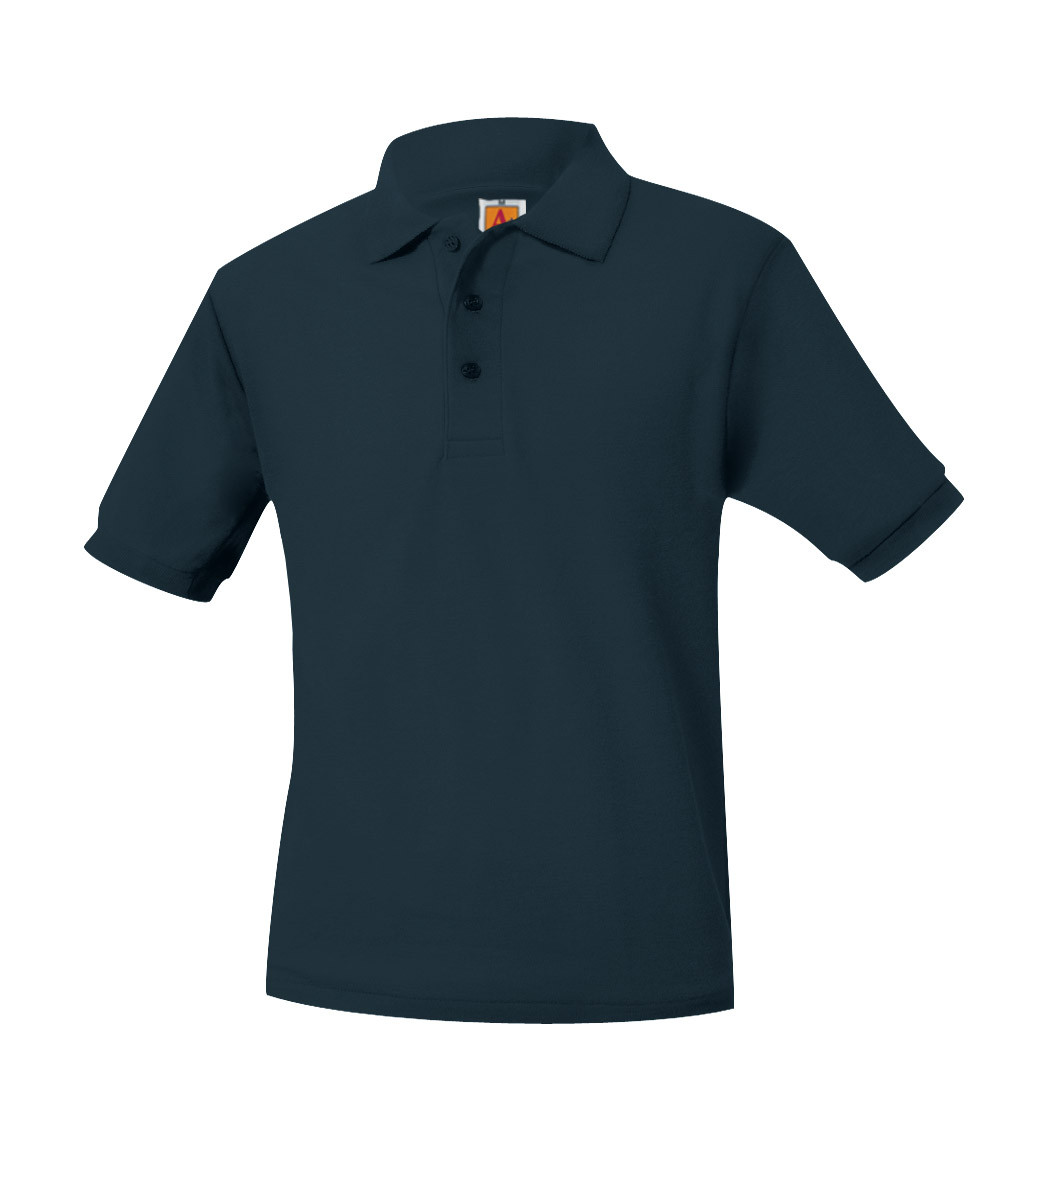 a610cf288 Pique Short Sleeve Polo Shirt - Educational Outfitters